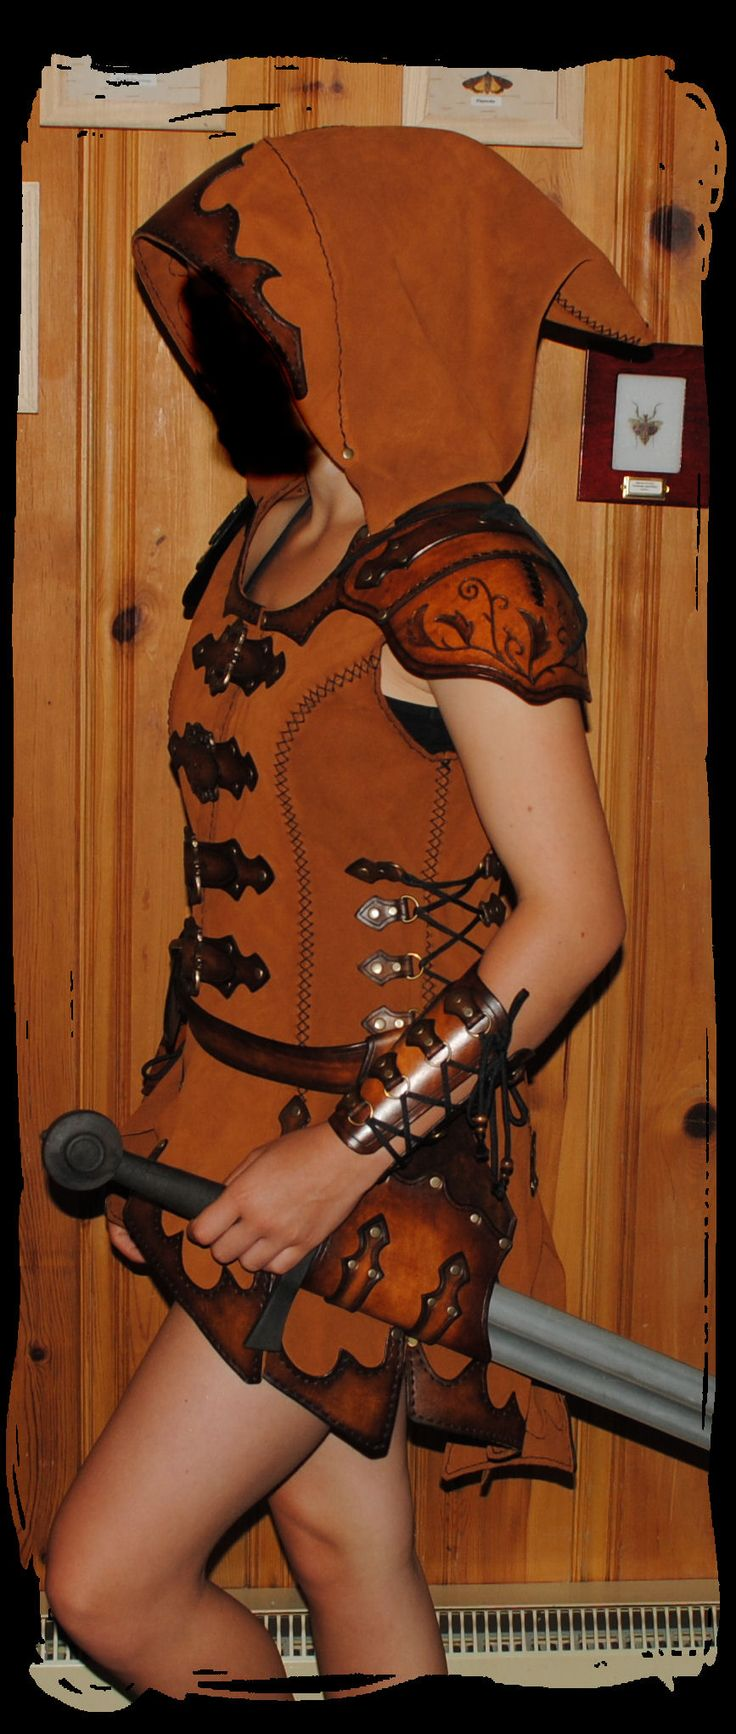 archer leather tunic by Lagueuse cosplay costume LARP equipment gear magic item | Create your own roleplaying game material w/ RPG Bard: www.rpgbard.com | Writing inspiration for Dungeons and Dragons DND D&D Pathfinder PFRPG Warhammer 40k Star Wars Shadowrun Call of Cthulhu Lord of the Rings LoTR + d20 fantasy science fiction scifi horror design | Not Trusty Sword art: click artwork for source